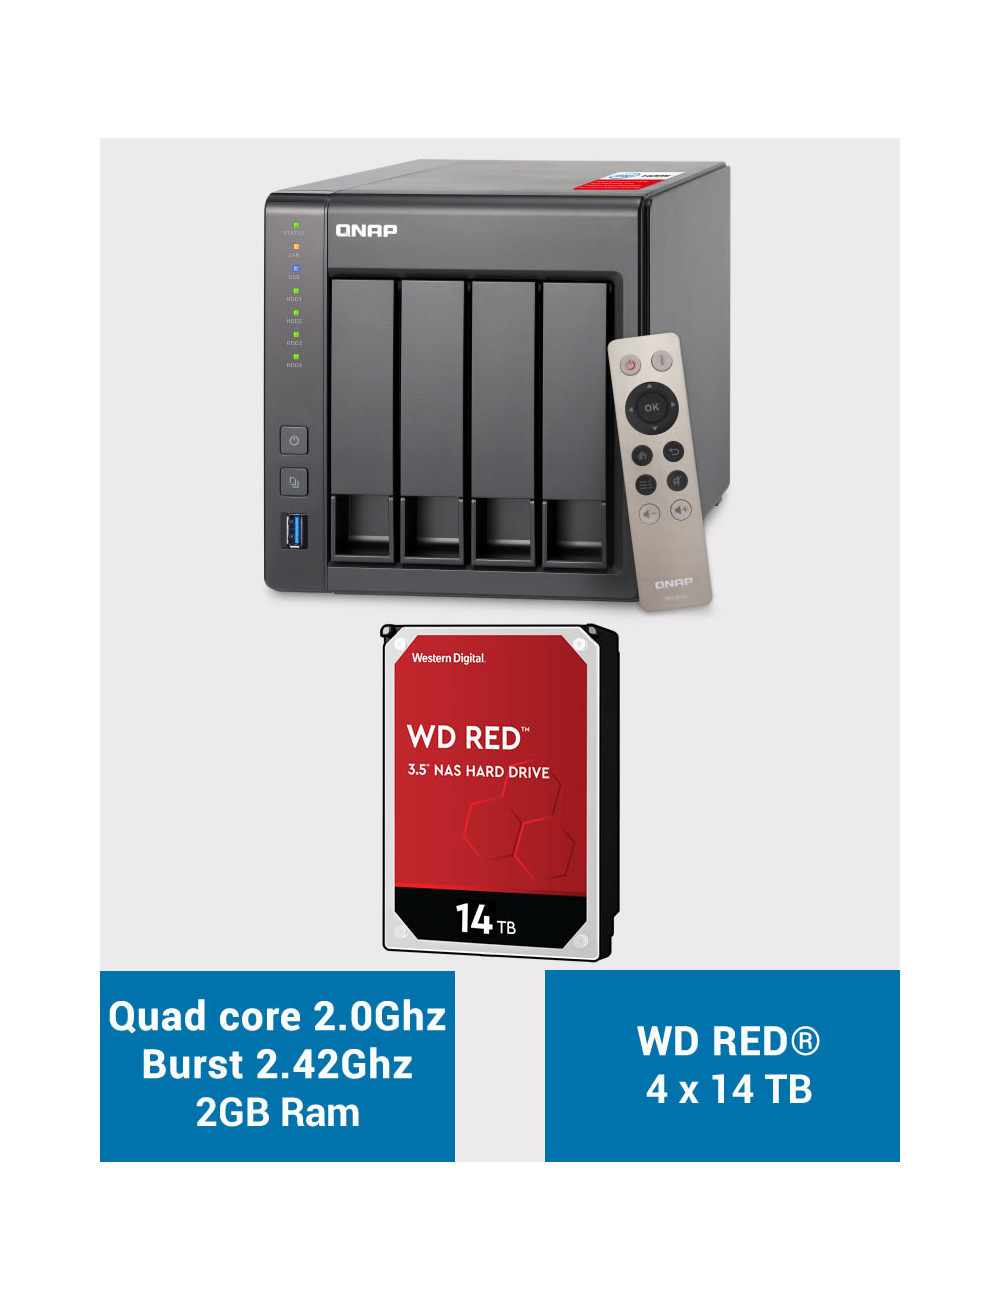 QNAP TS-451+ 2Go Serveur NAS WD RED 56To (4x14To)